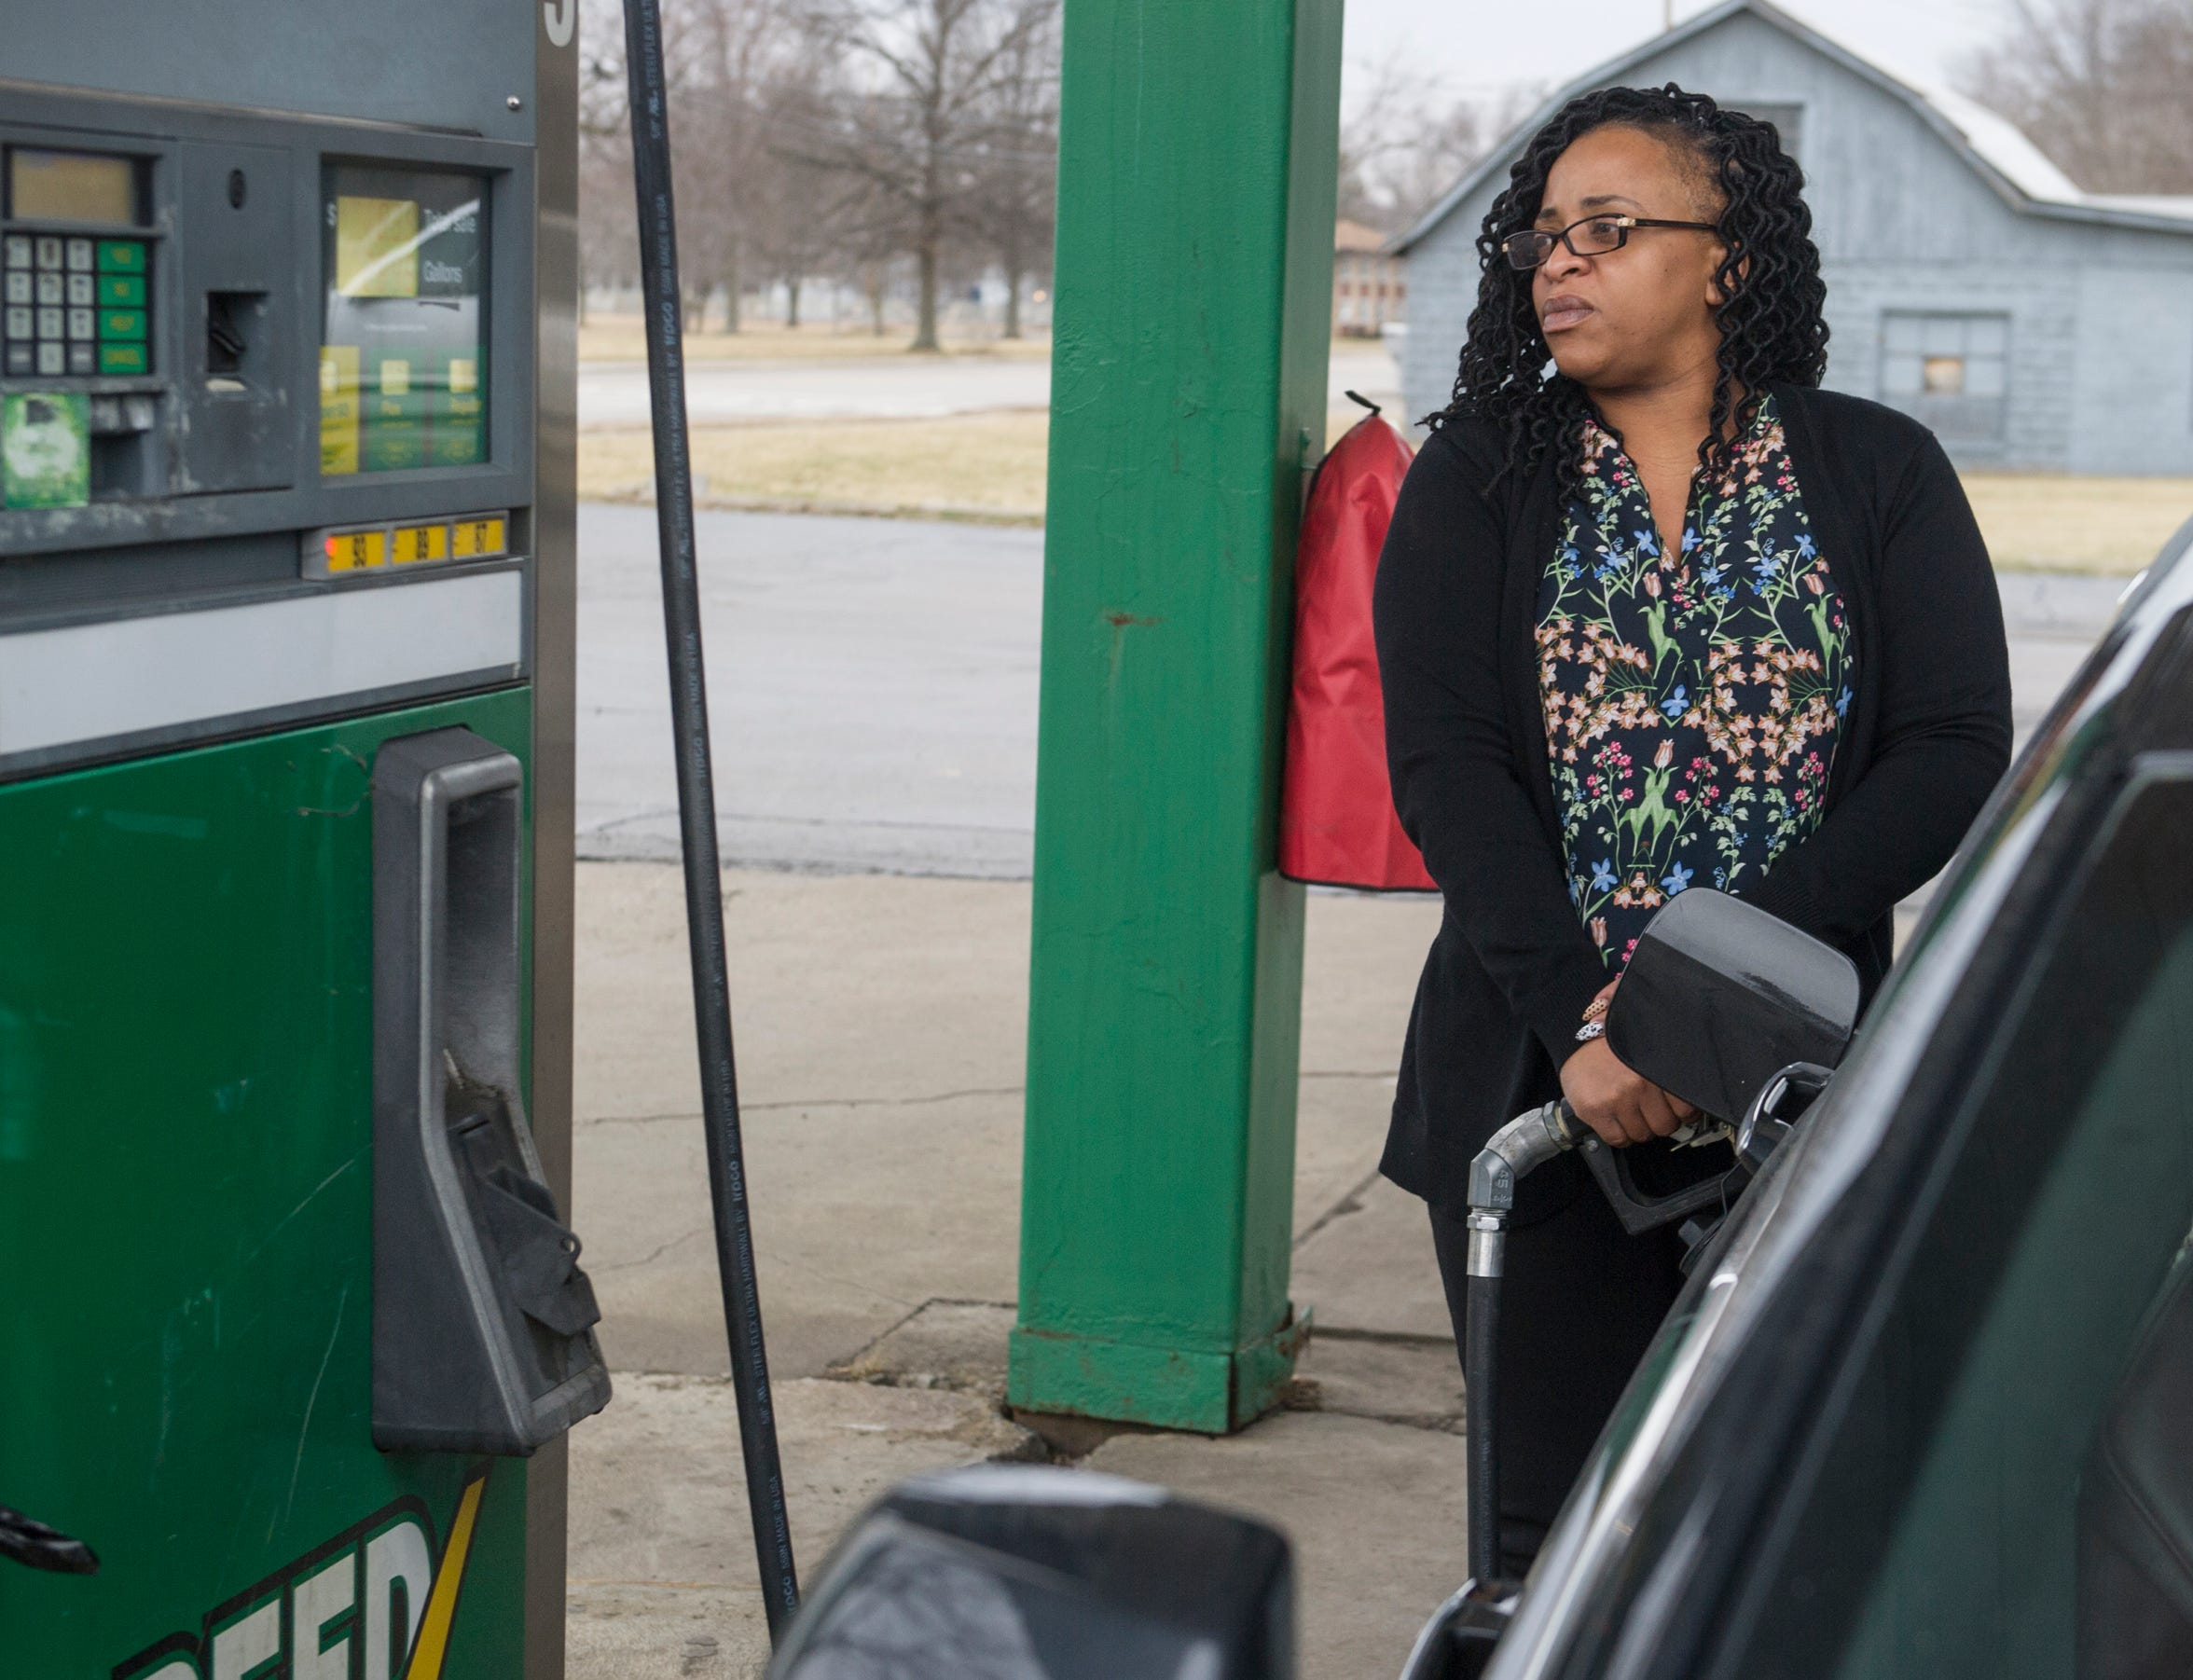 Erica Royster of Warren, Ohio, pumps gas  near the GM Lordstown plant. Royster was laid off from the MAGNA Seating Systems plant in Lordstown, a supplier to the GM plant.